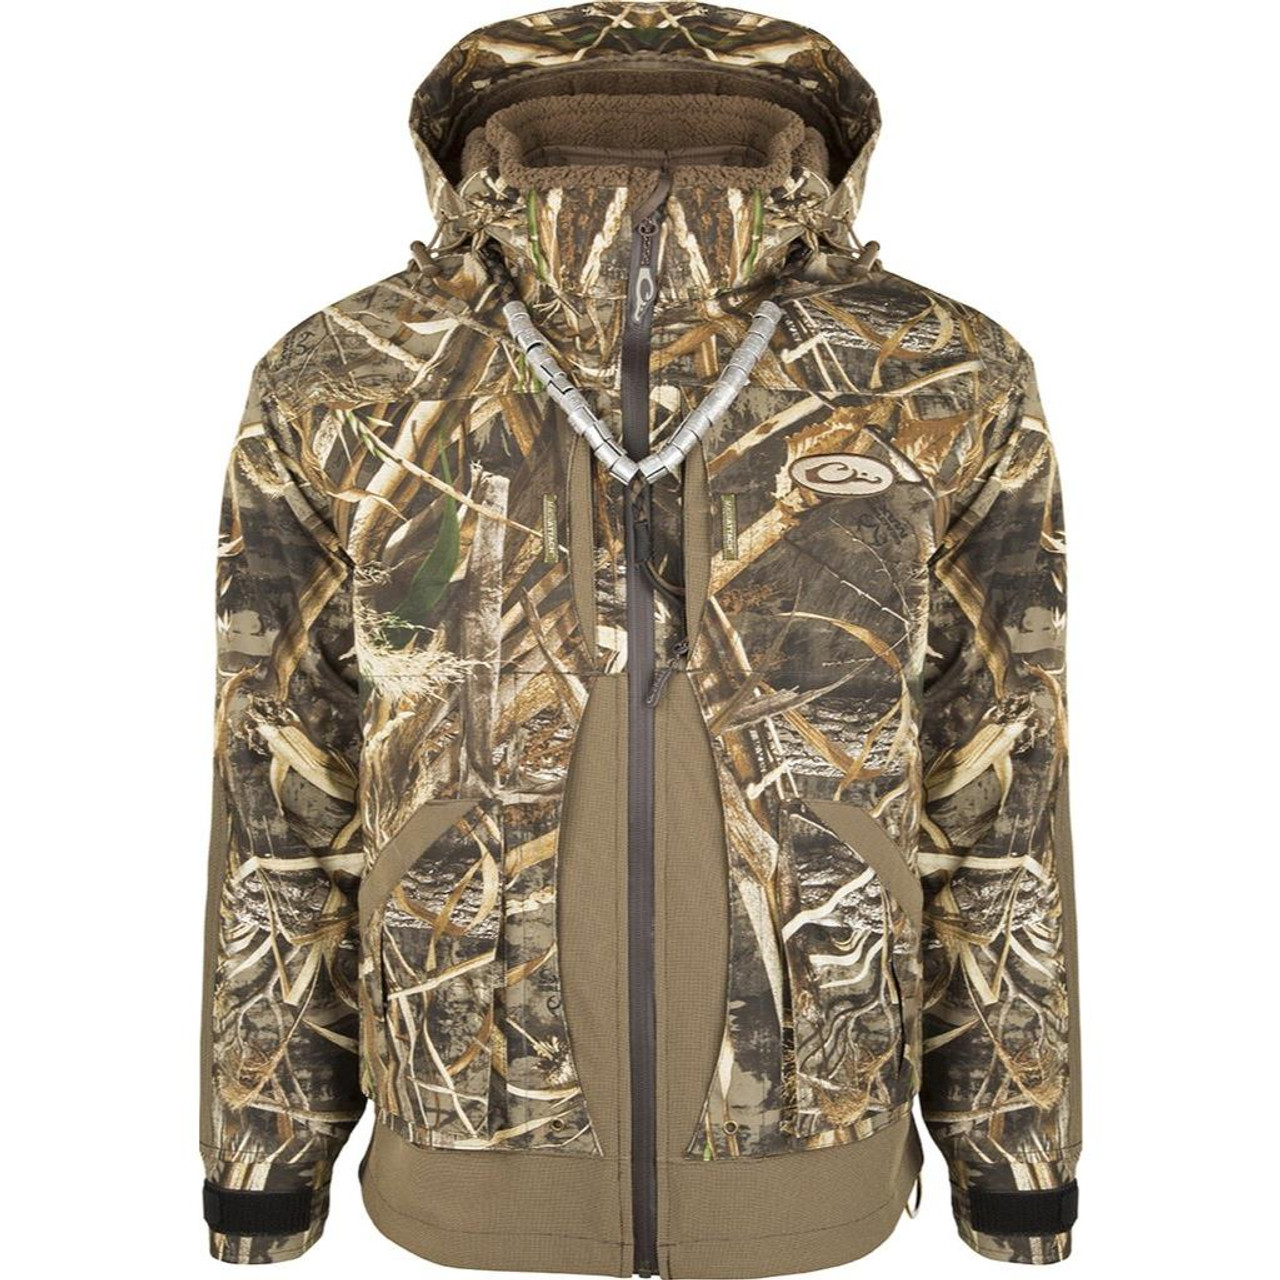 2174f772c3972 Drake Guardian Elite 3-in-1 Systems Jacket #DW6025 - GameMasters ...